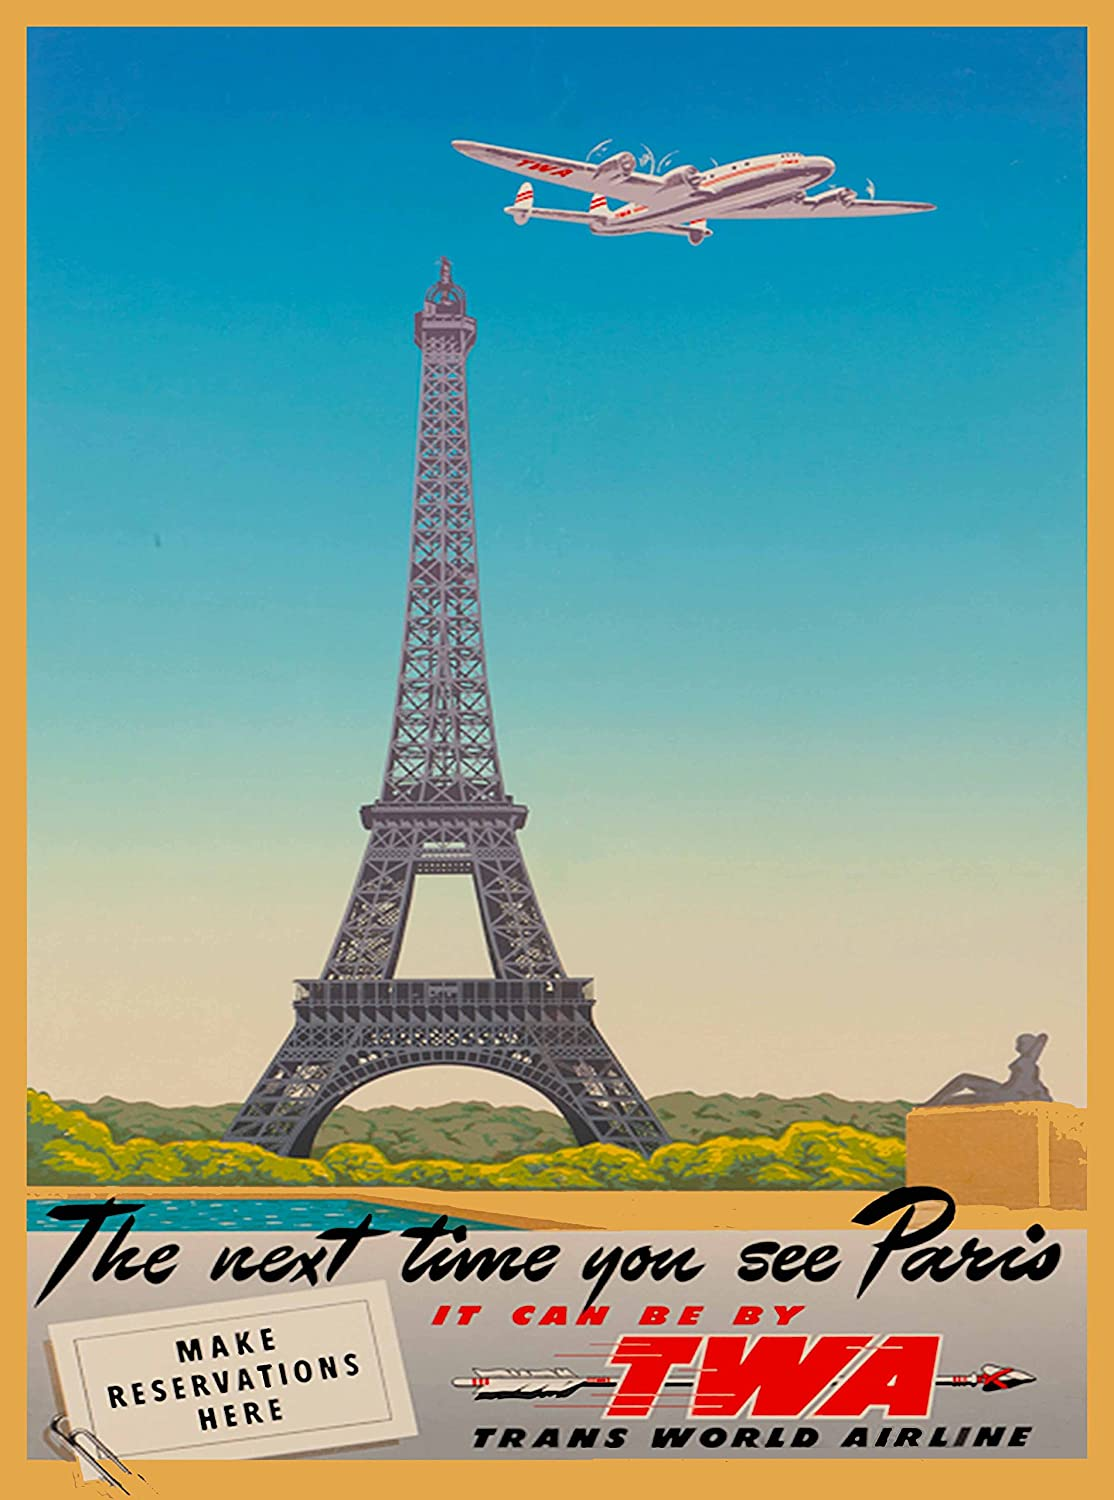 Paris France French Eiffel Tower Airplane Vintage Travel Poster Advertisement